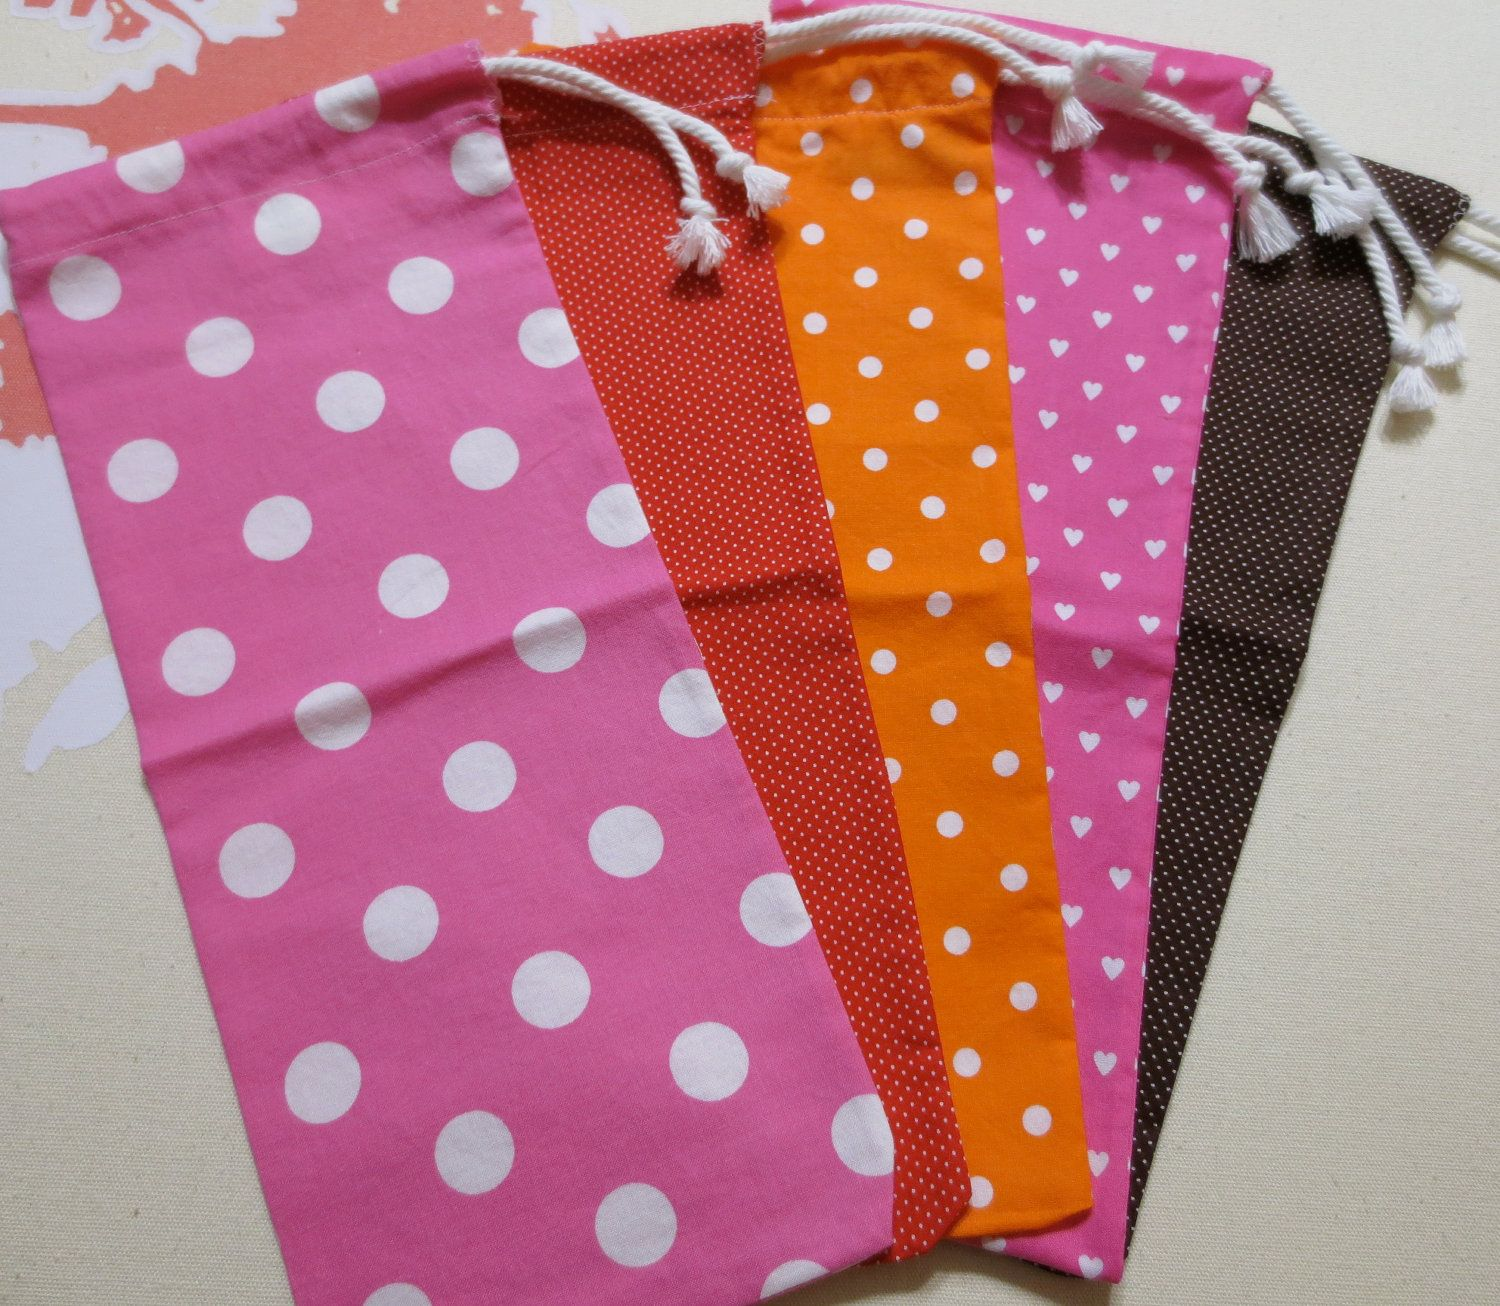 Pin By Sherry David Duin On Crafts Diy Bag Sewing Crafts Wine Craft